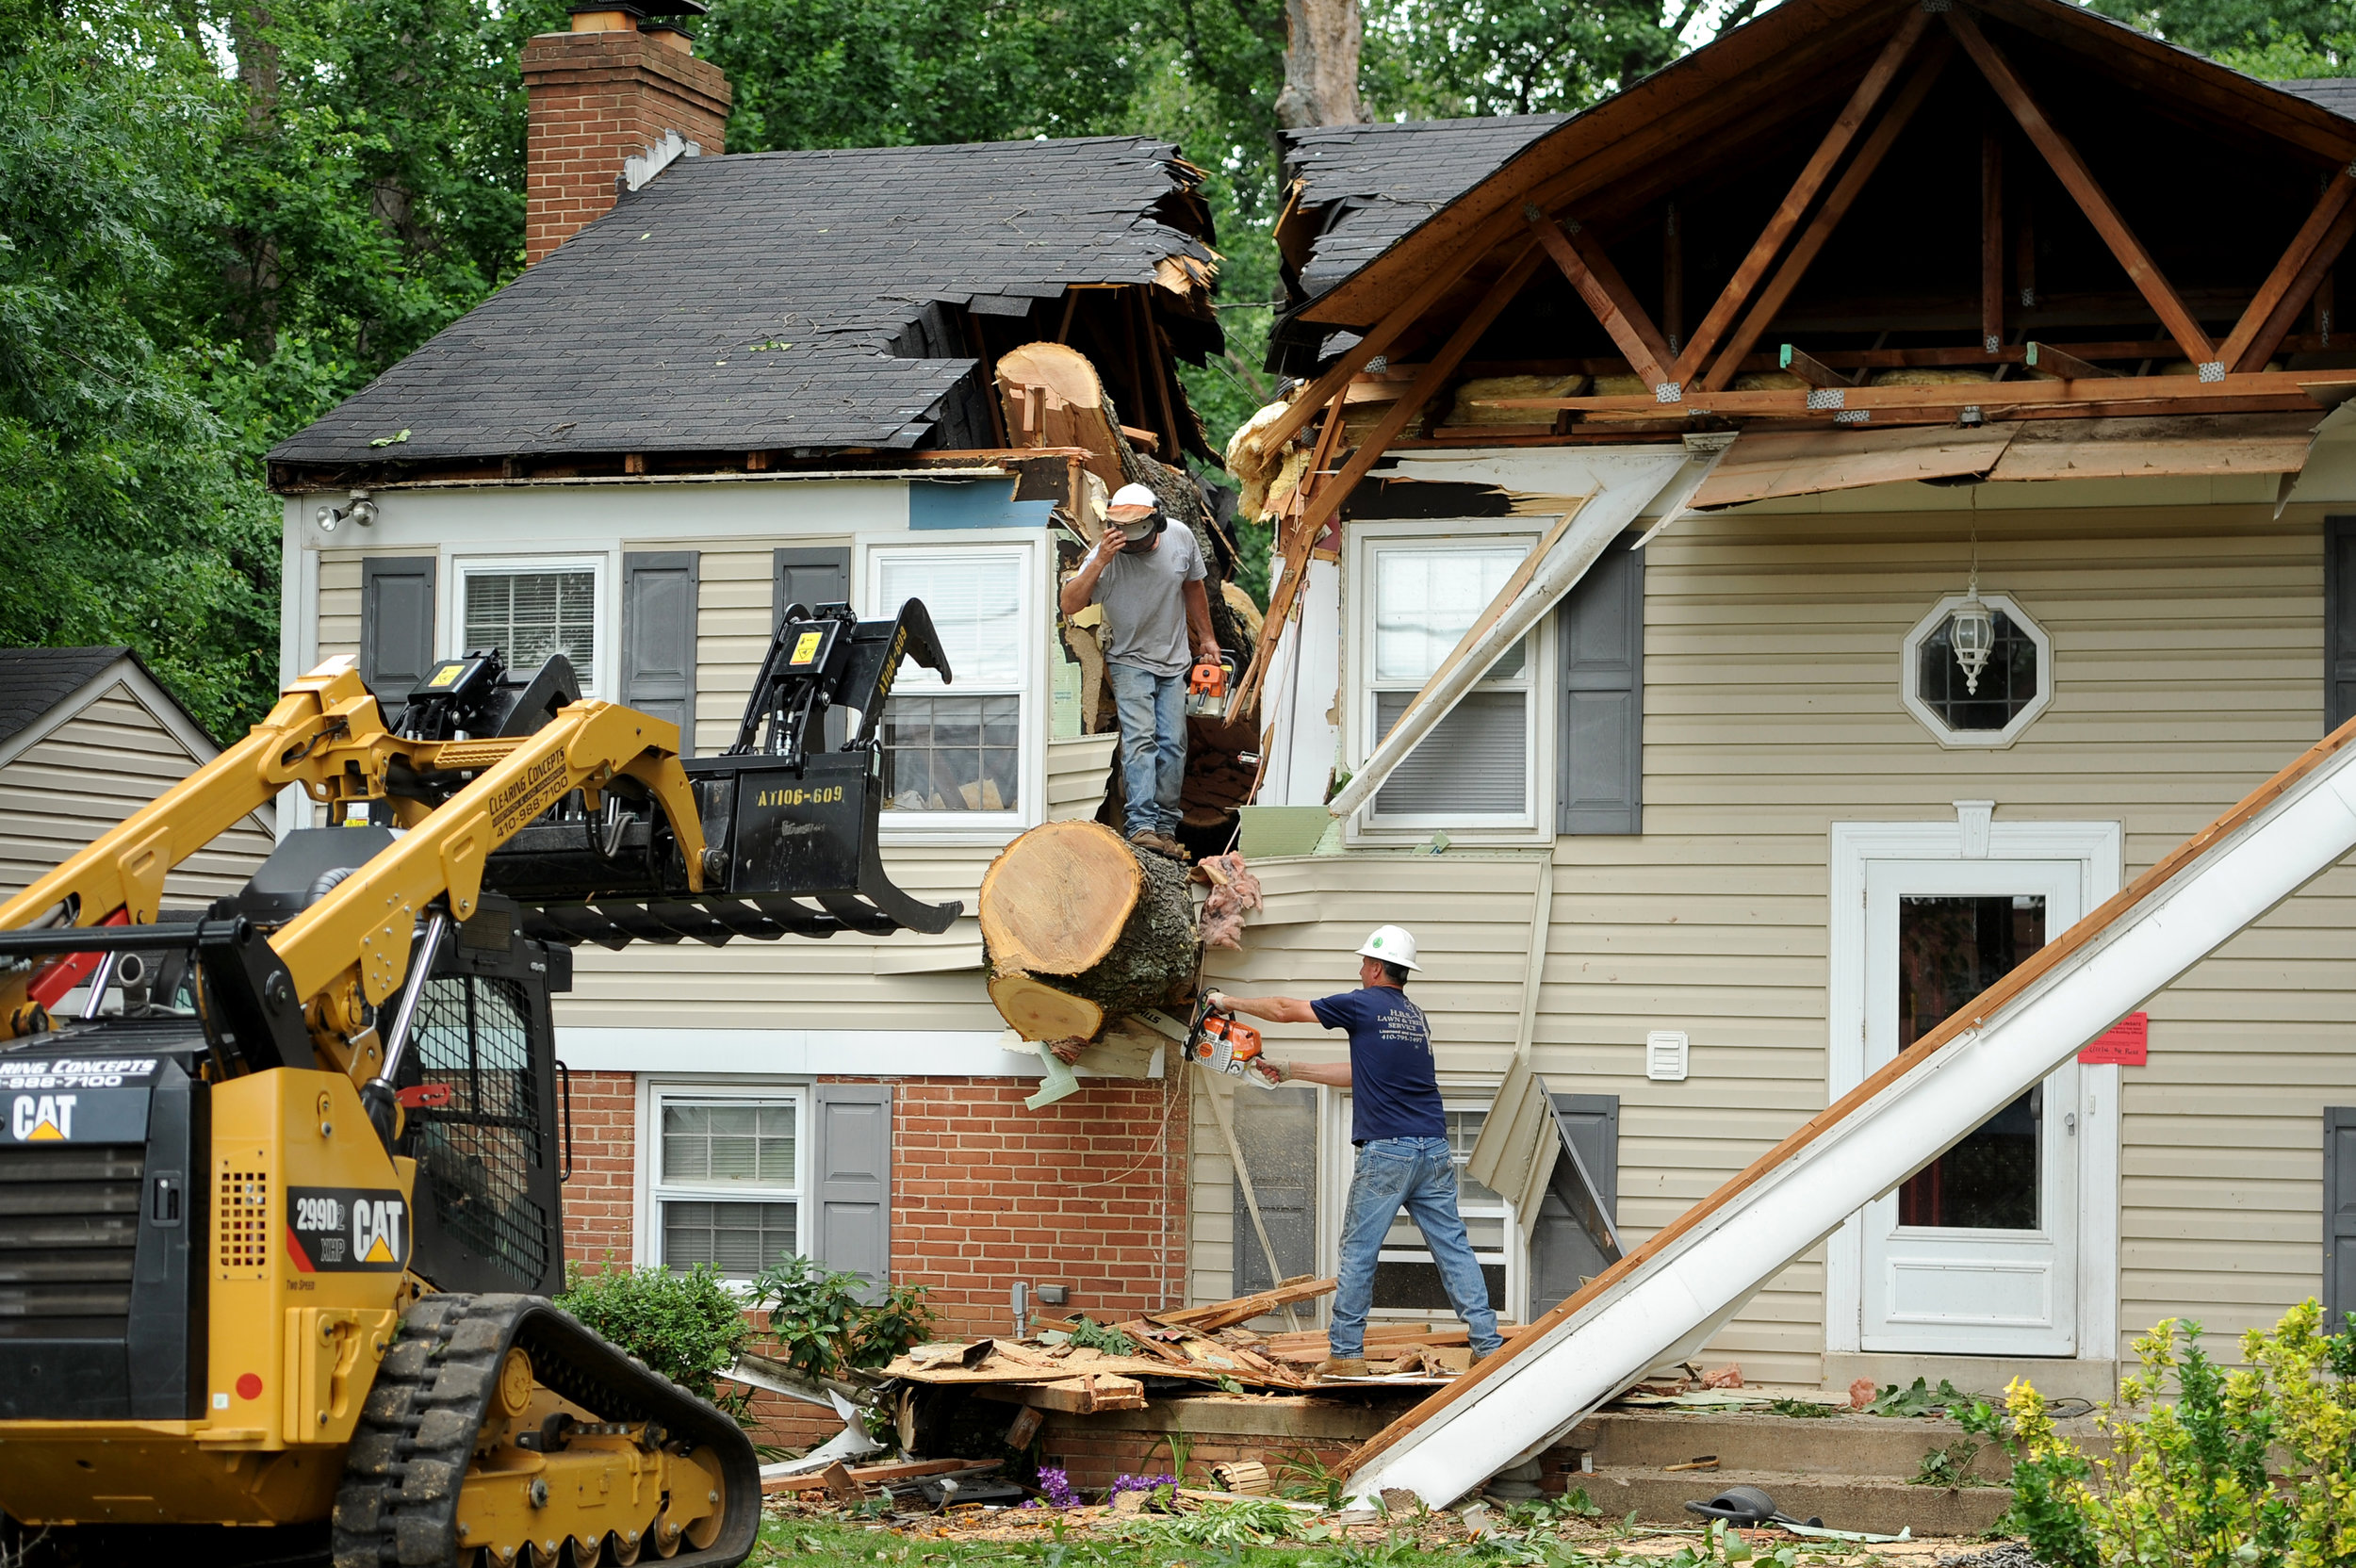 A crew helps clear a tree that fell on a house in Glenelg, Maryland on Wednesday, June 22, 2016, after a tornado touched down in Howard County Tuesday afternoon.